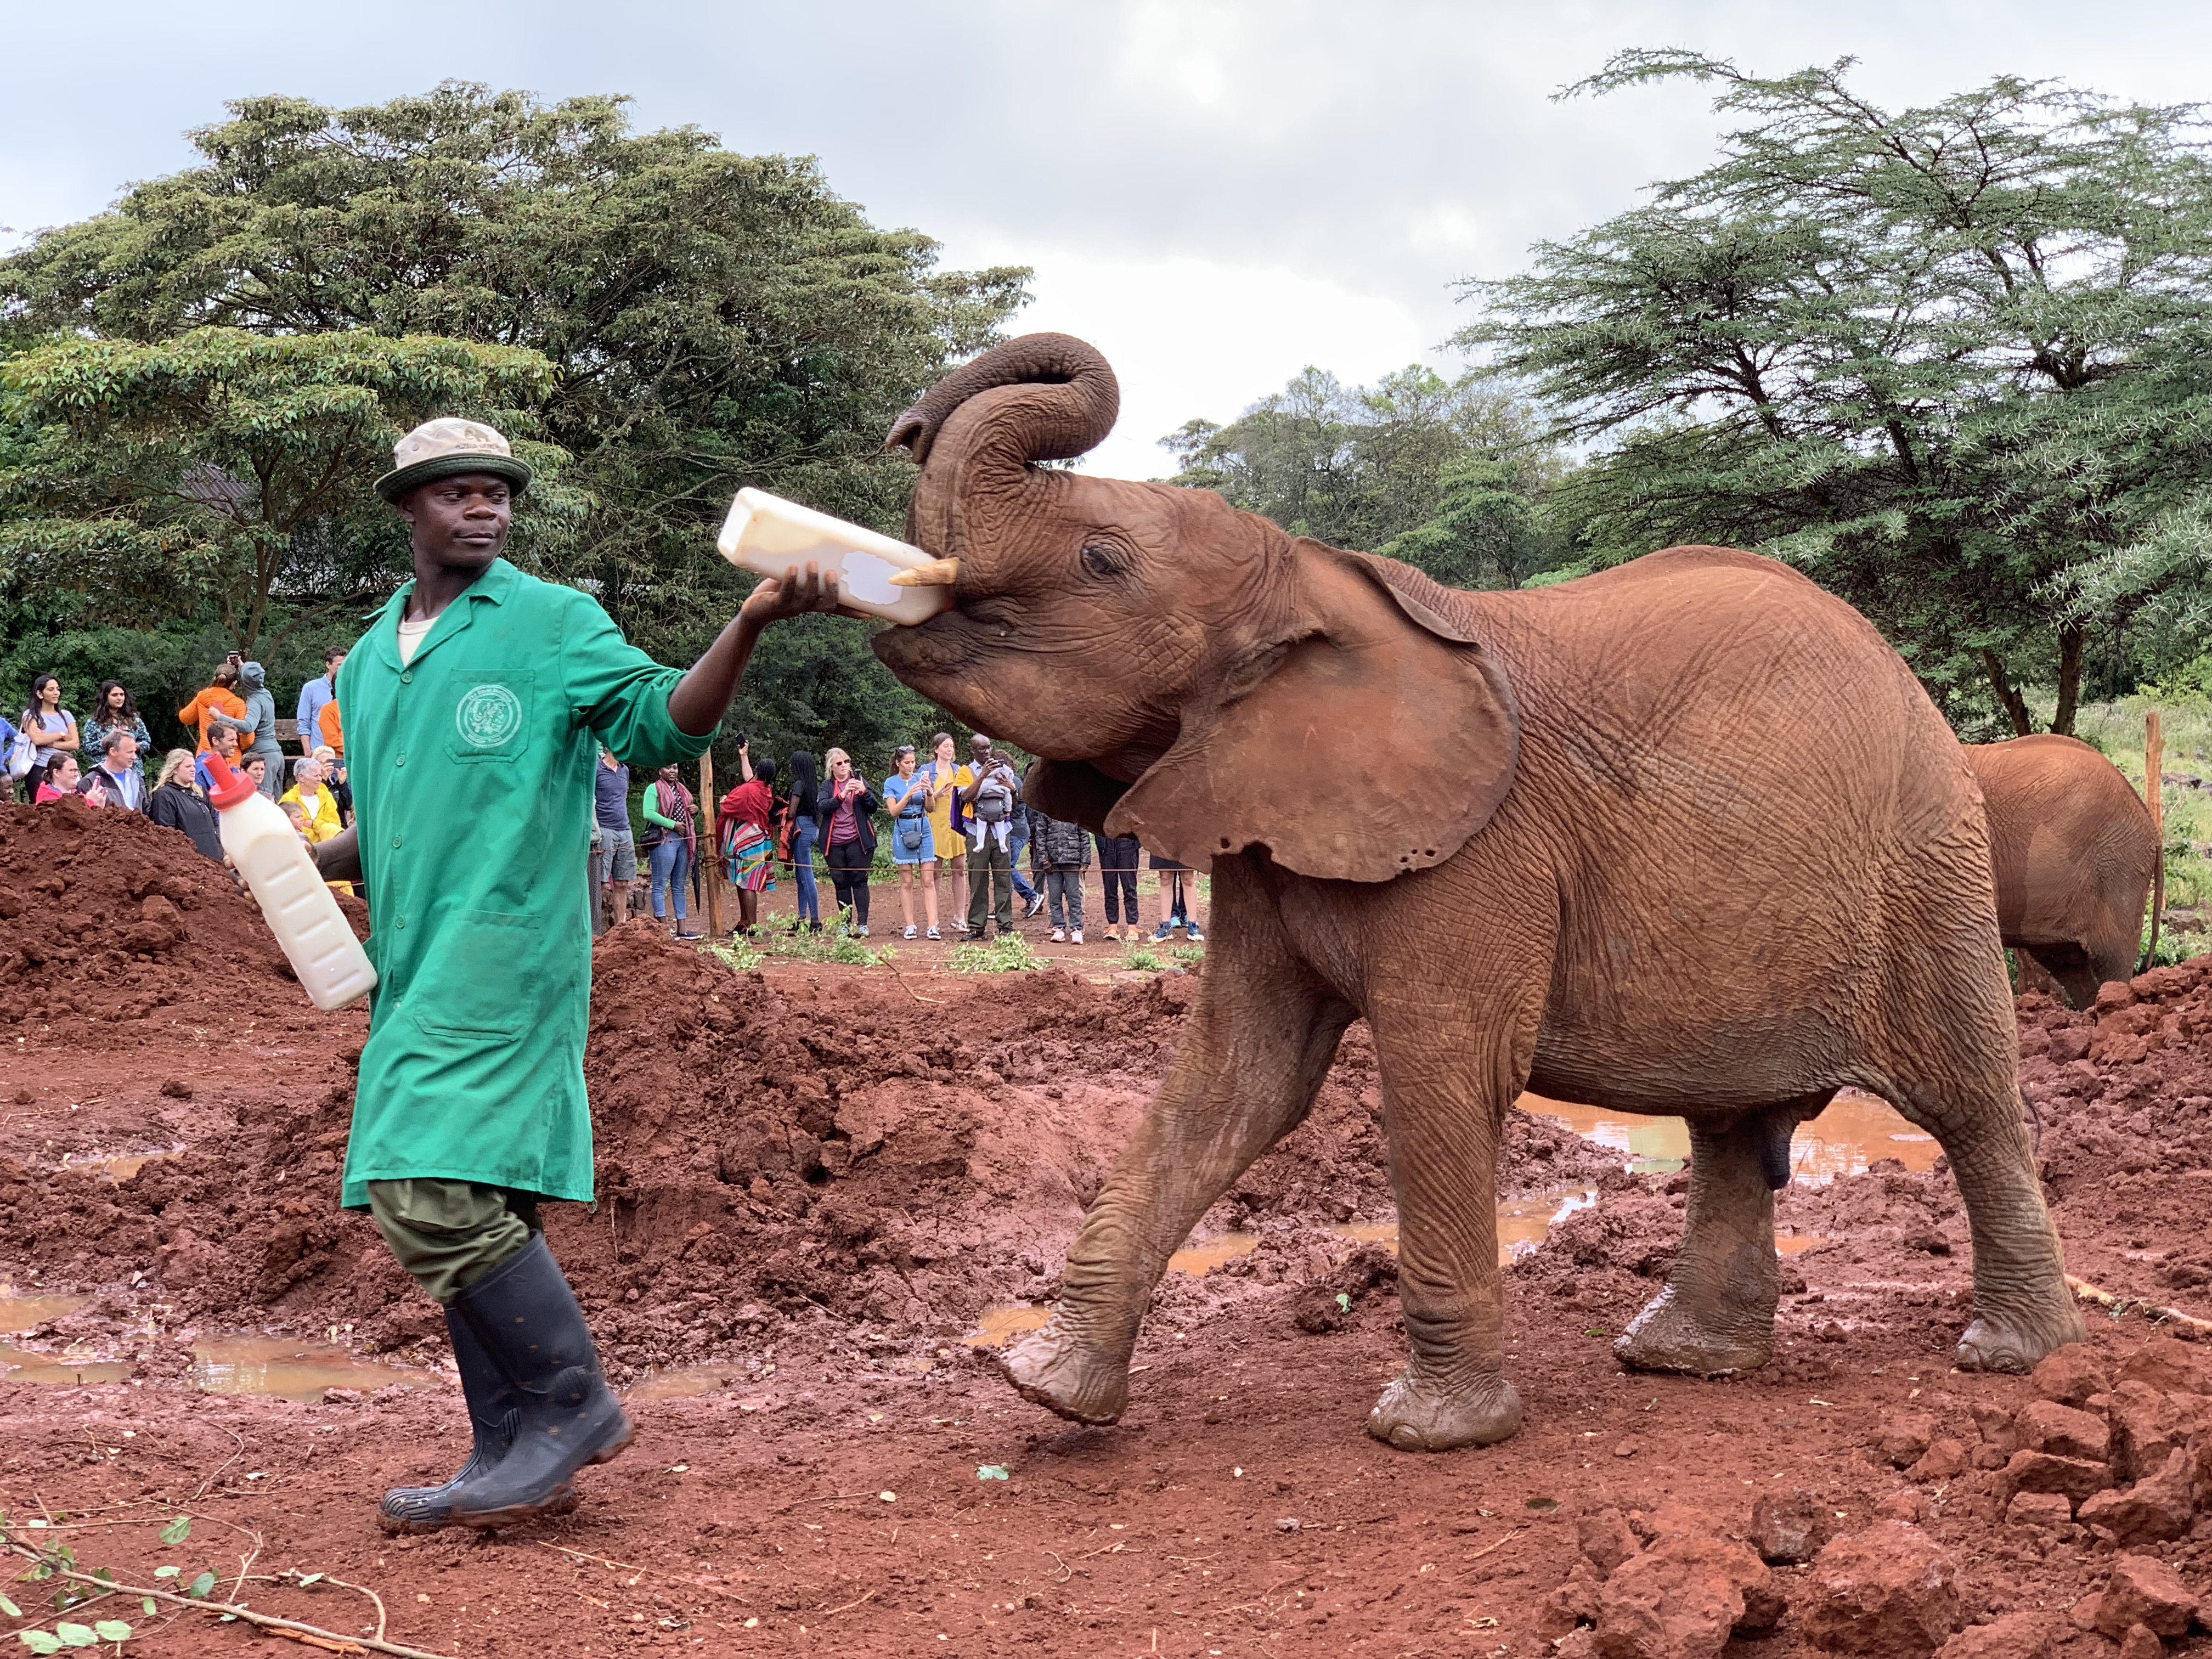 A Day at the David Sheldrick Elephant and Rhino Orphanage in Kenya